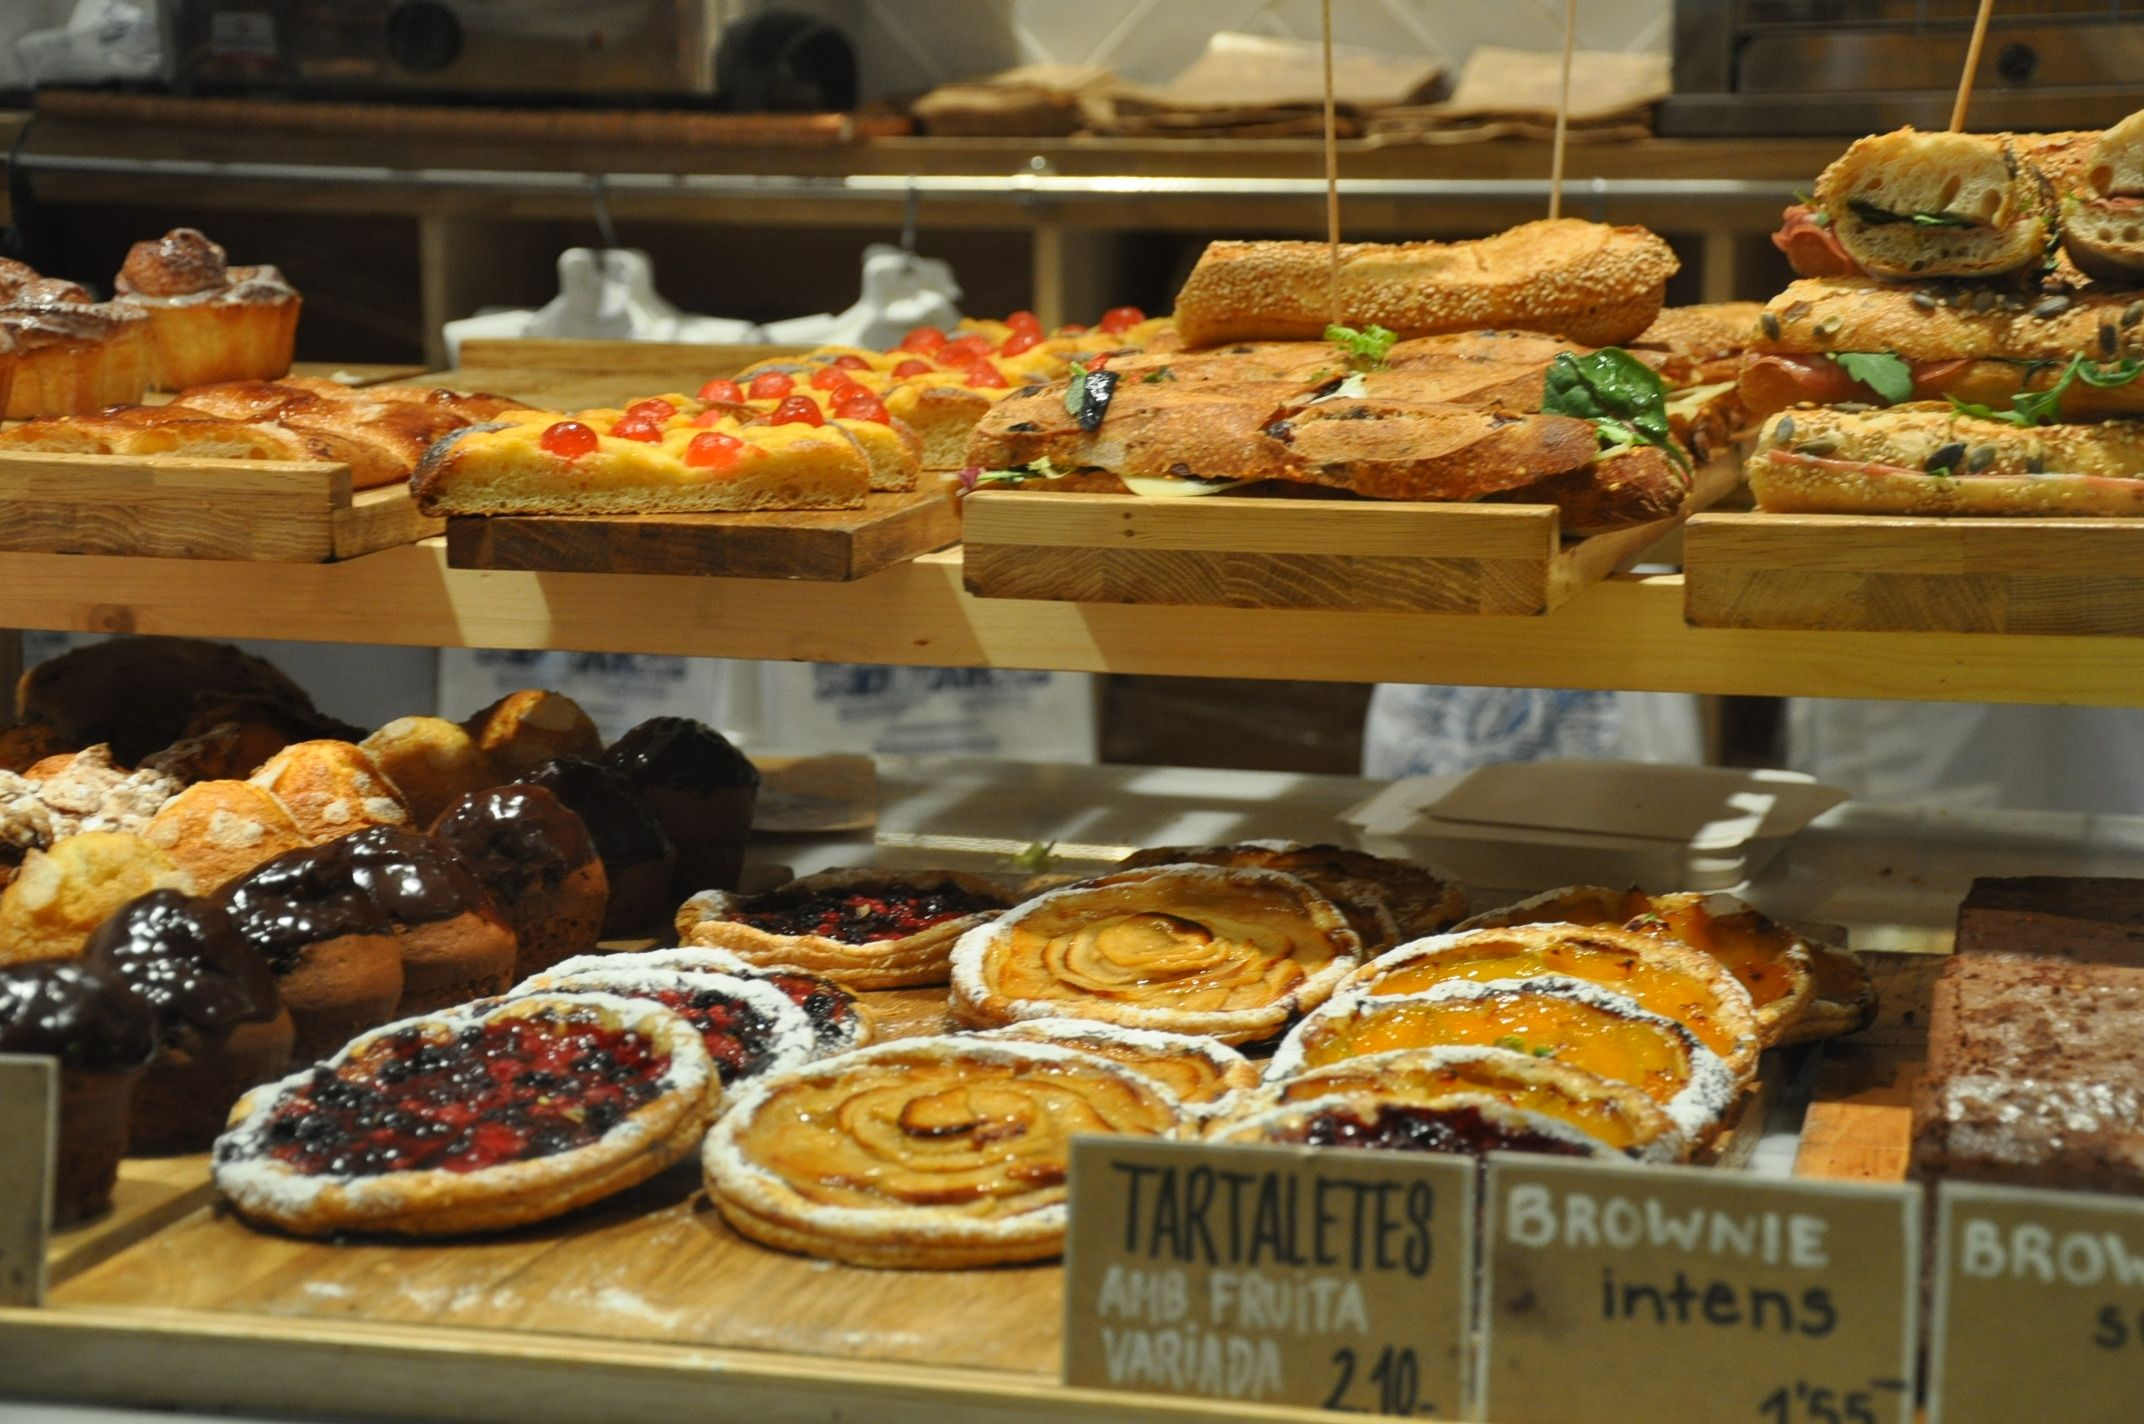 Barcelona Bakery - Tarts and Muffins